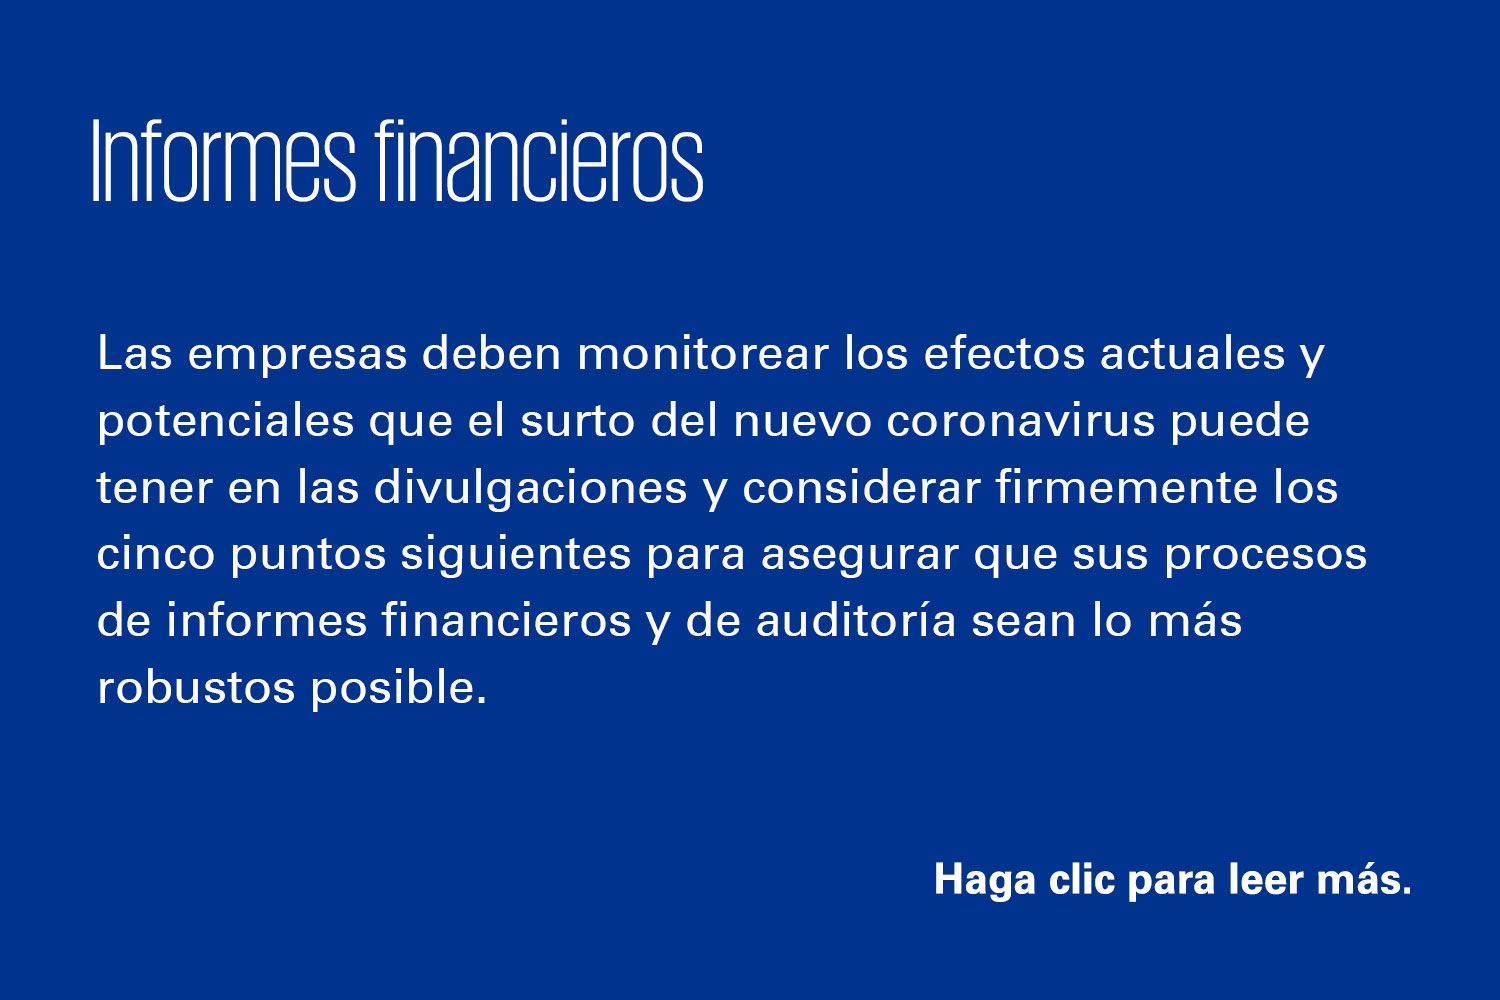 Informes financieros